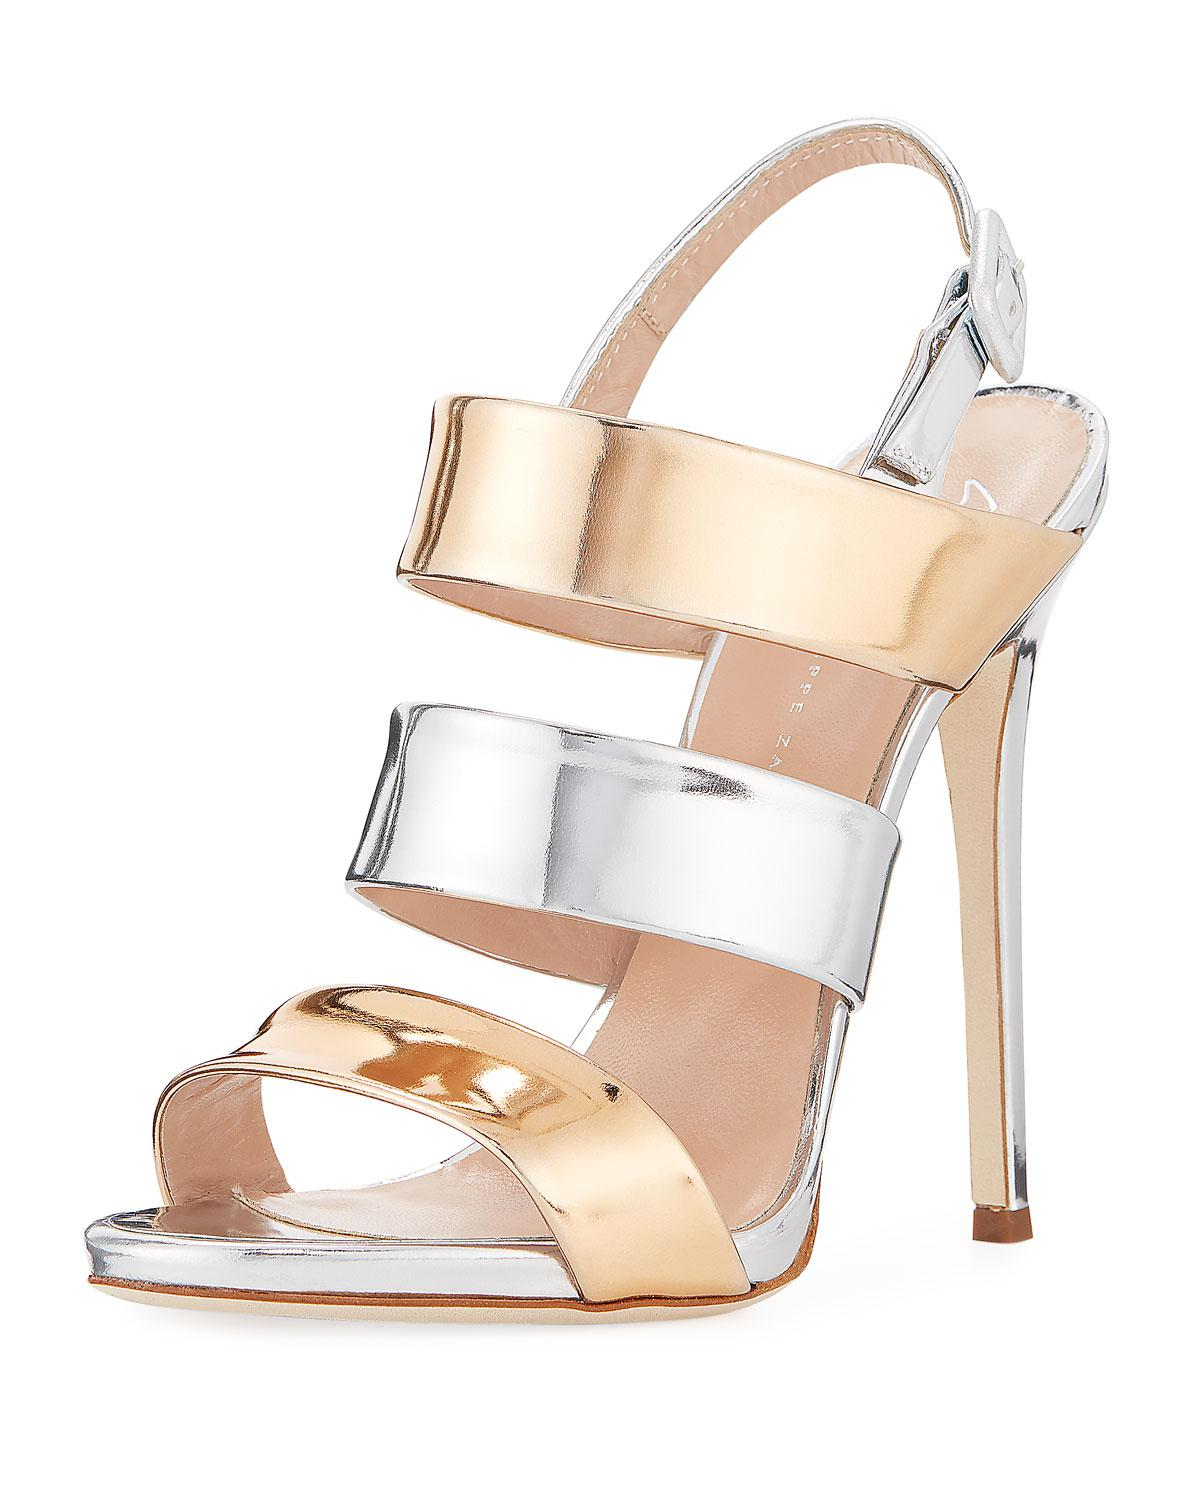 8173ebc5f Giuseppe Zanotti. Women s Two-tone Metallic 120mm Sandal